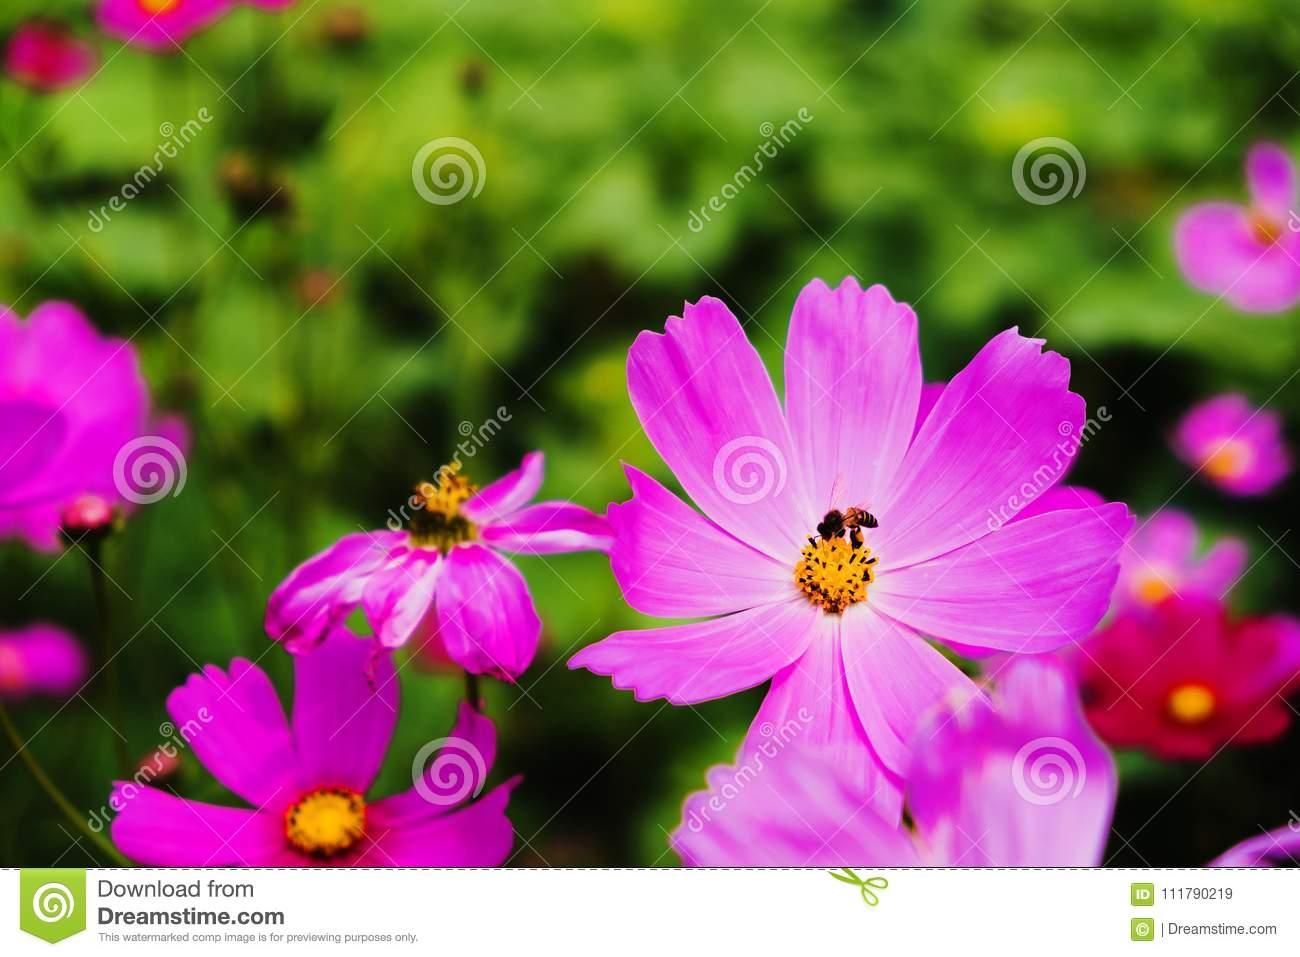 Cosmos flower and bee in thailand stock image image of cosmos royalty free stock photo izmirmasajfo